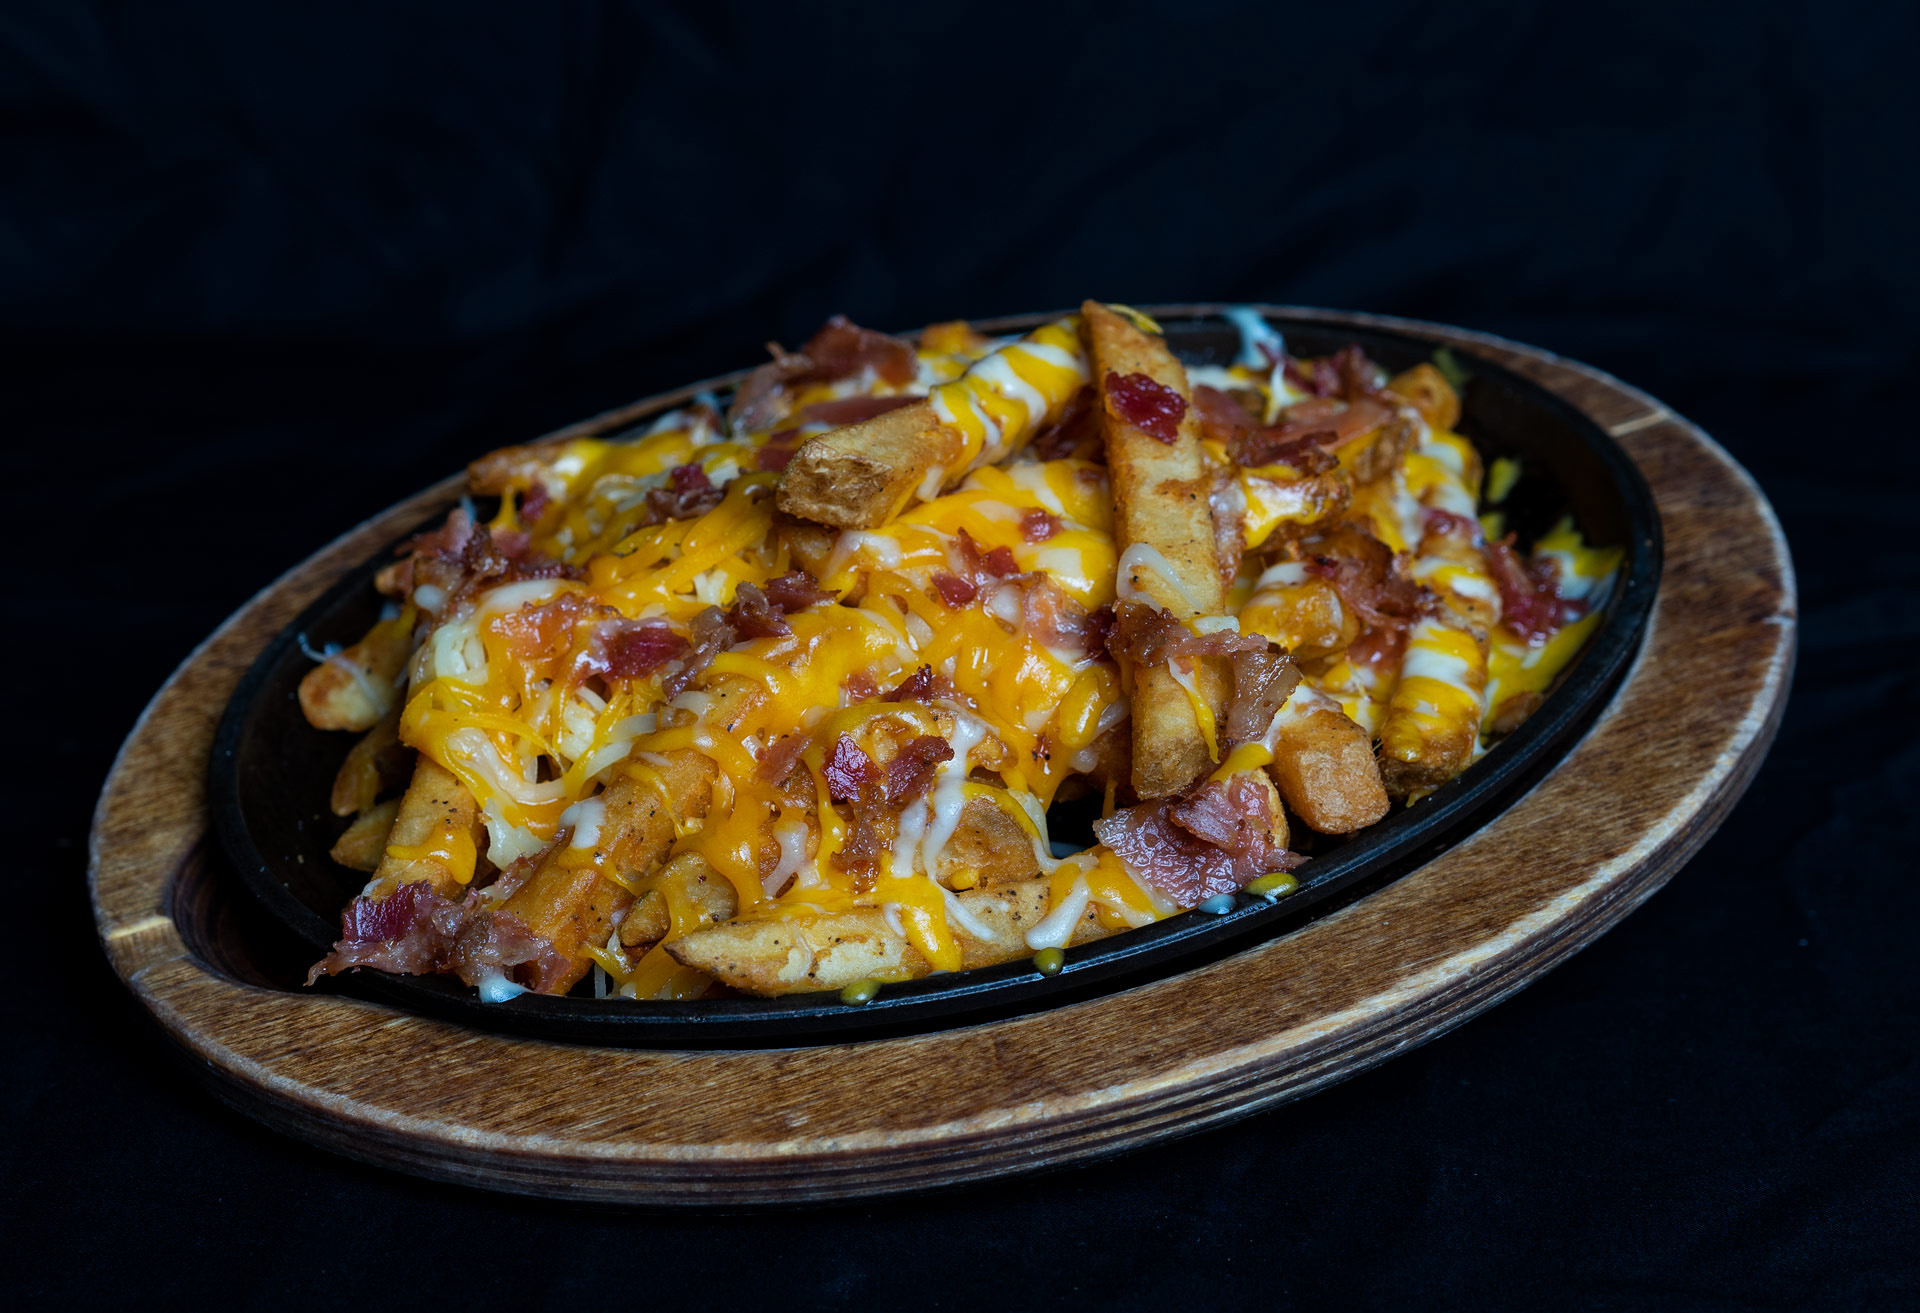 Bacon Cheddar French Fries A heaping order of French fries smothered with melted cheddar-jack cheese and topped with fresh hand cut hickory smoked bacon. 6.00